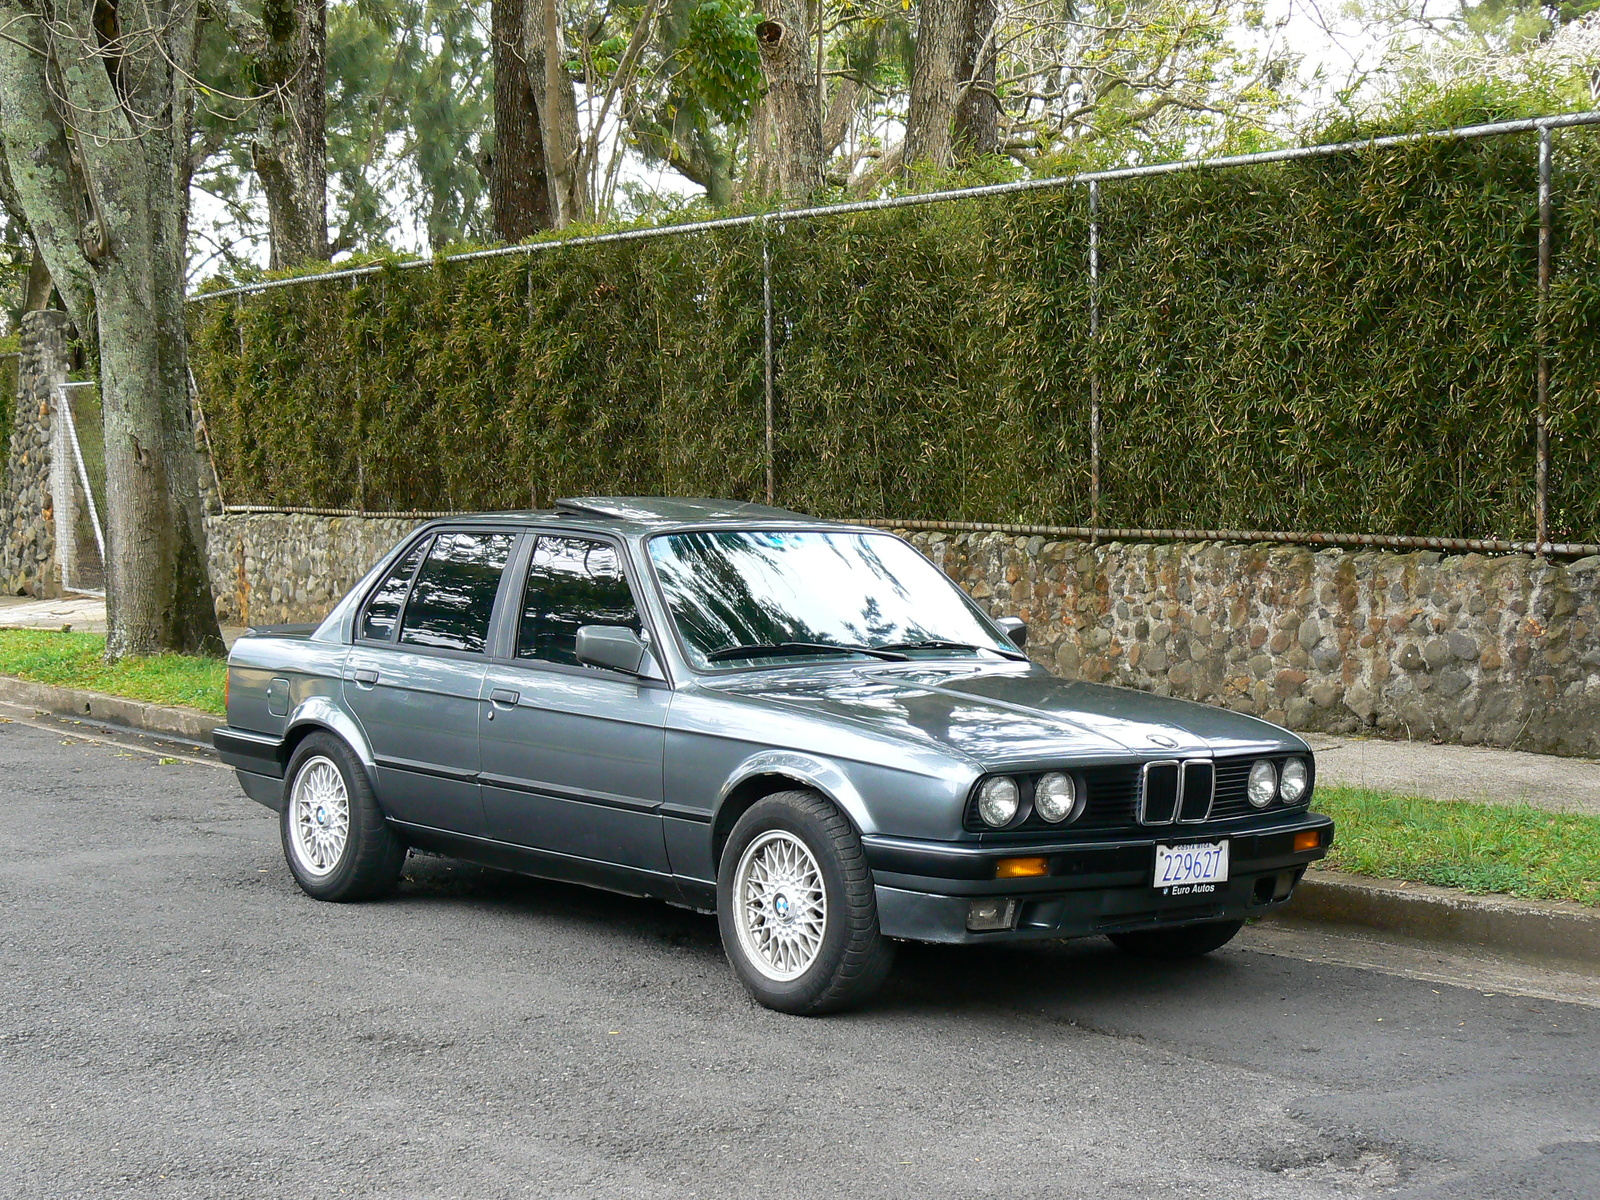 bmw 3 series 325i 1989 technical specifications interior and exterior photo. Black Bedroom Furniture Sets. Home Design Ideas